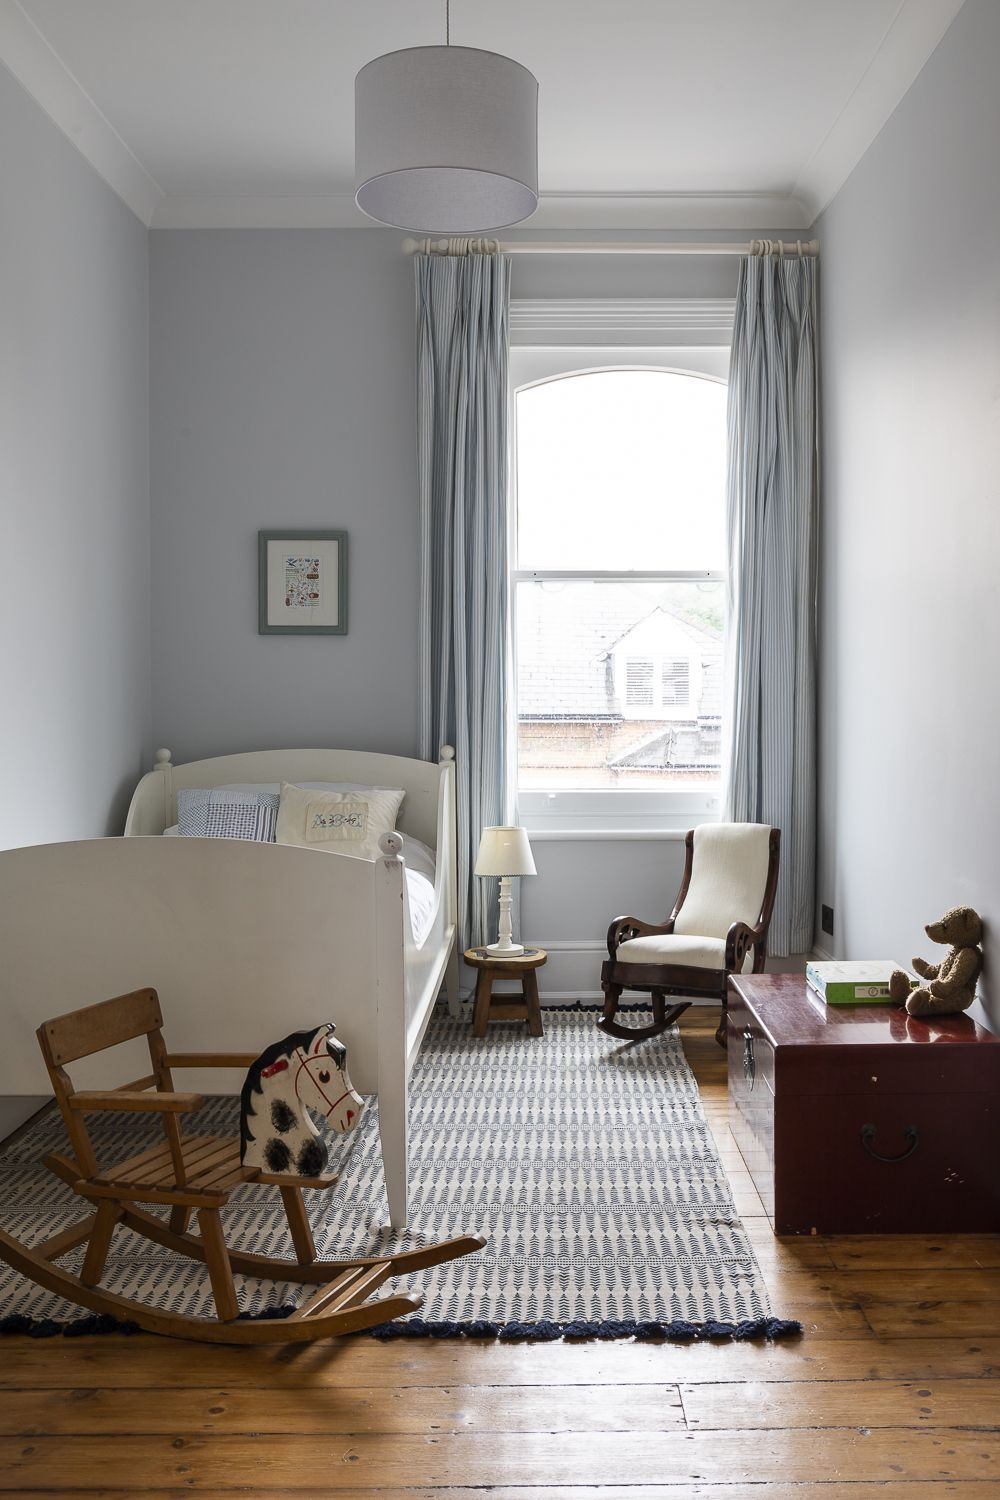 Interior design u styling in this large bedroom victorian house by